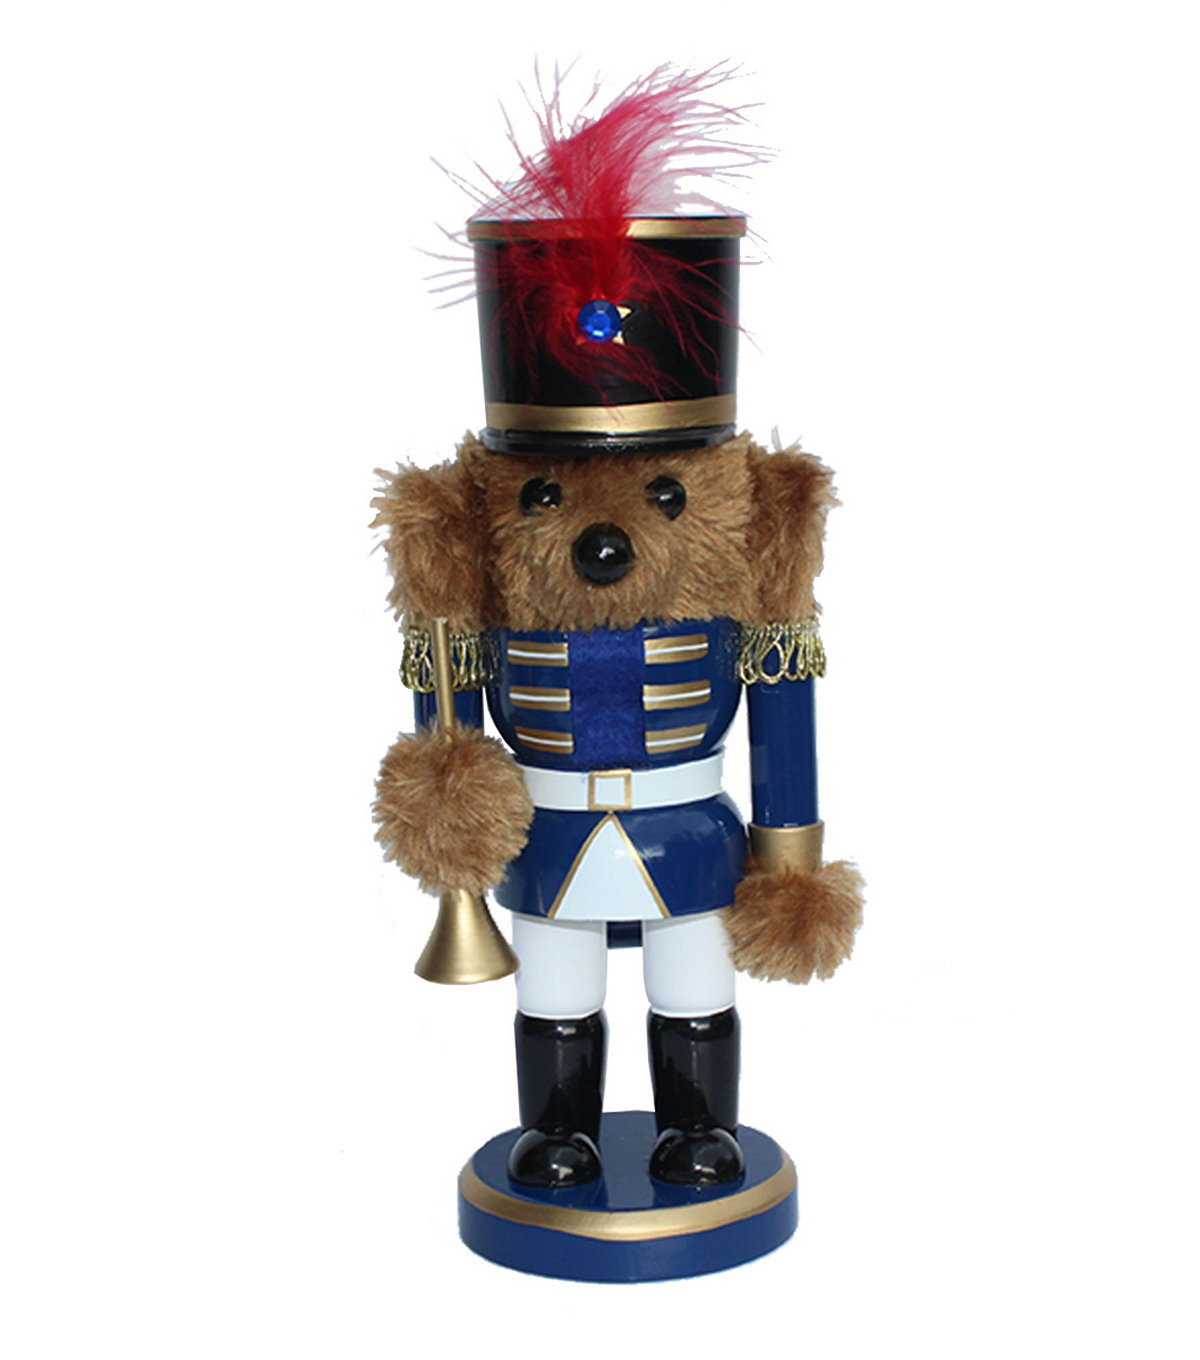 Maker\u0027s Holiday 9\u0027\u0027 Trumpet Nutcracker